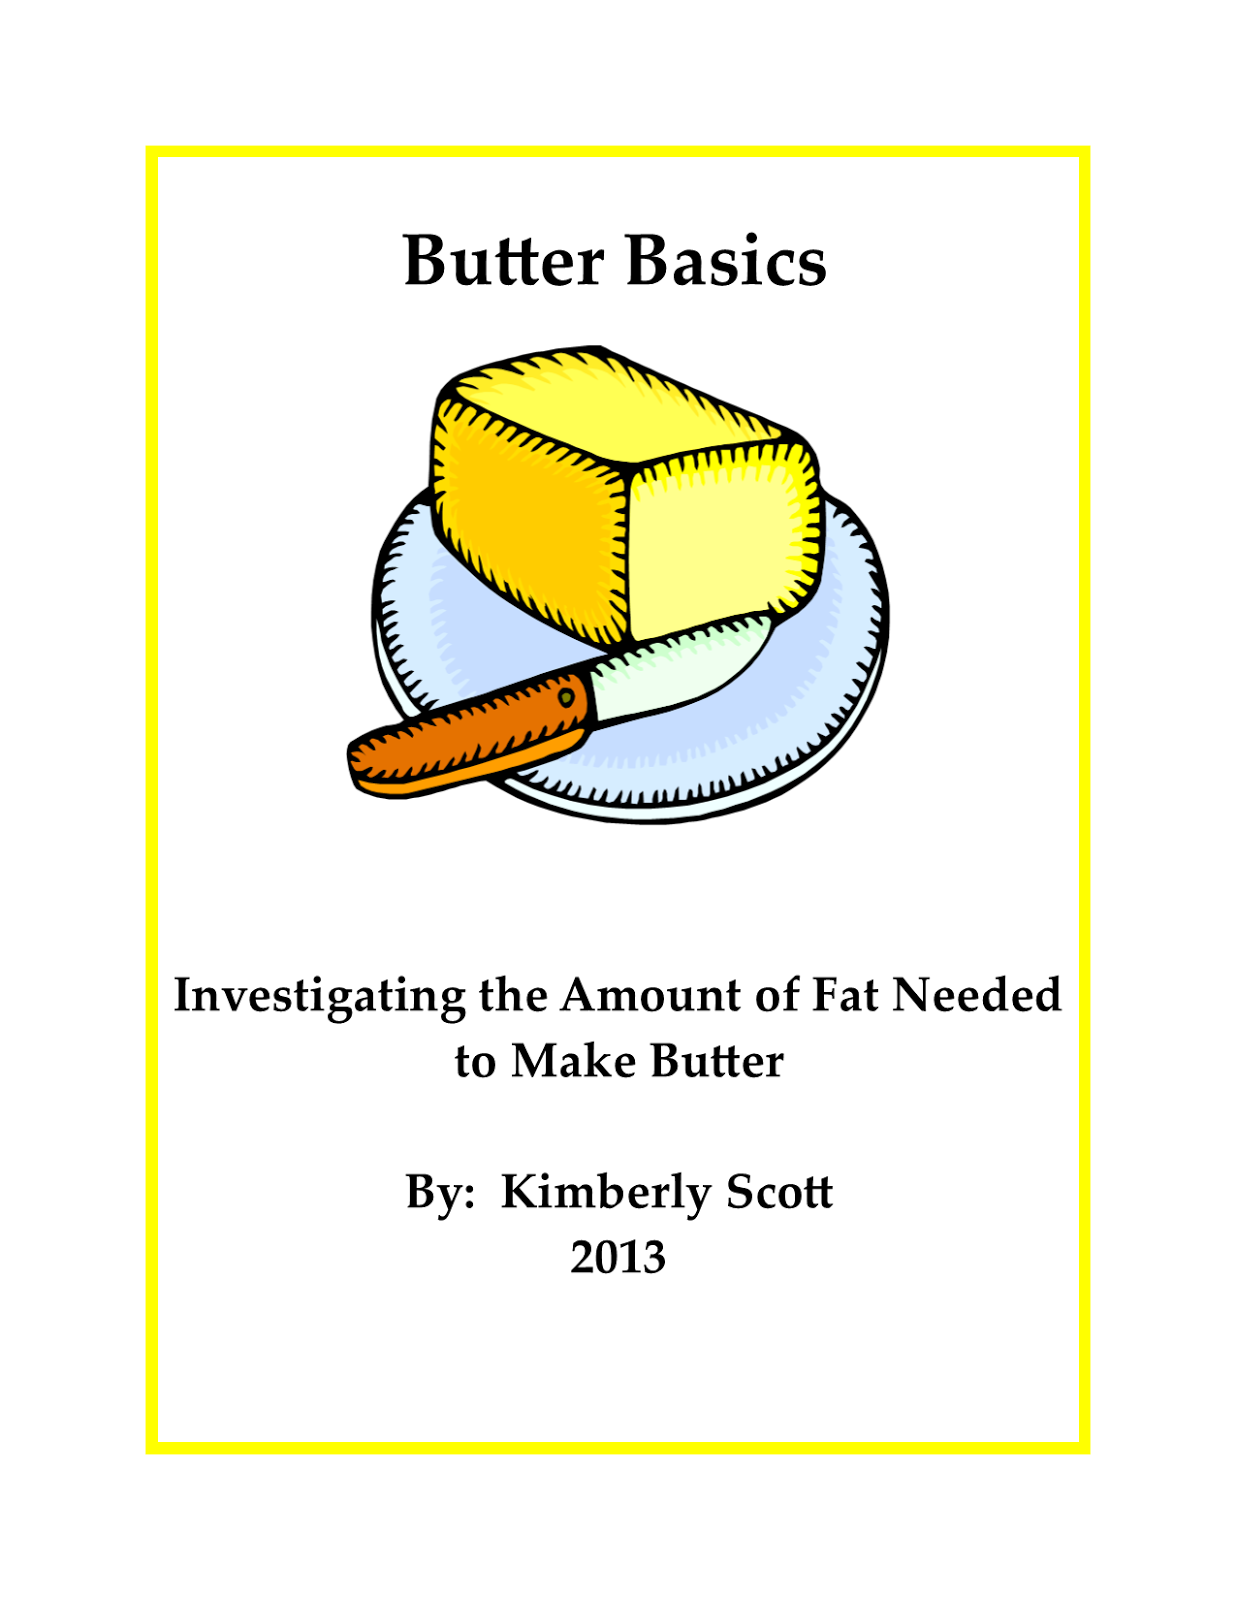 http://www.teacherspayteachers.com/Product/My-investigation-on-Churning-Butter-986738